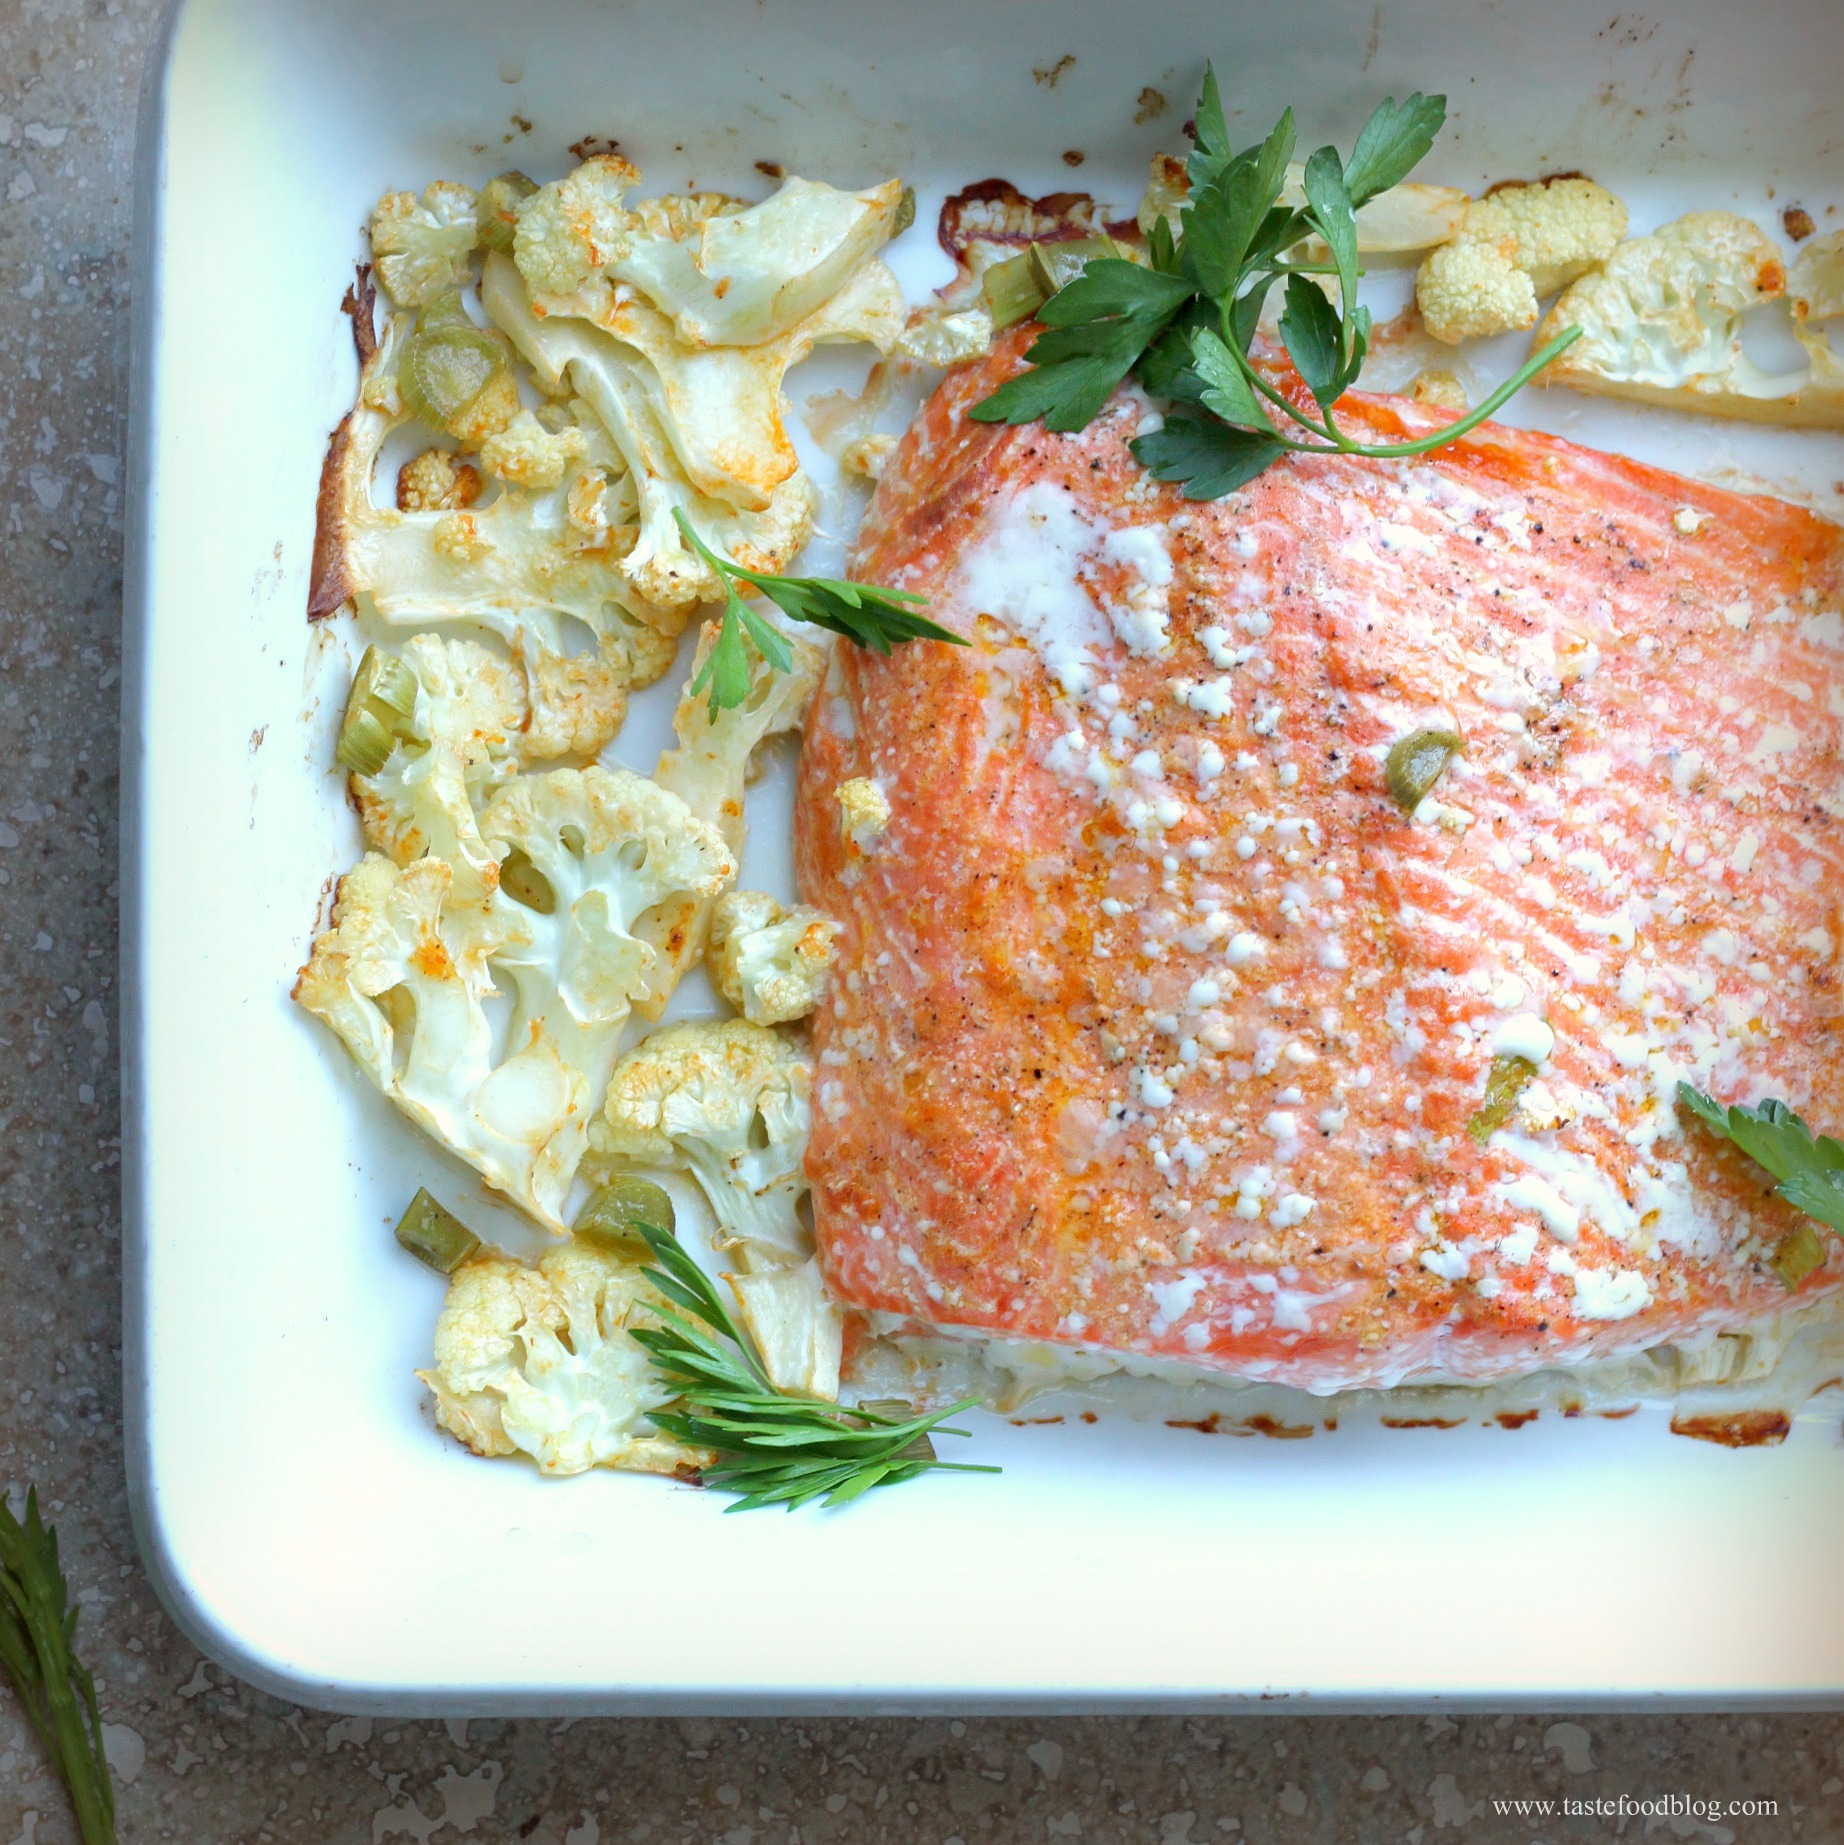 Salmon, cauliflower and sriracha come together beautifully in this ...